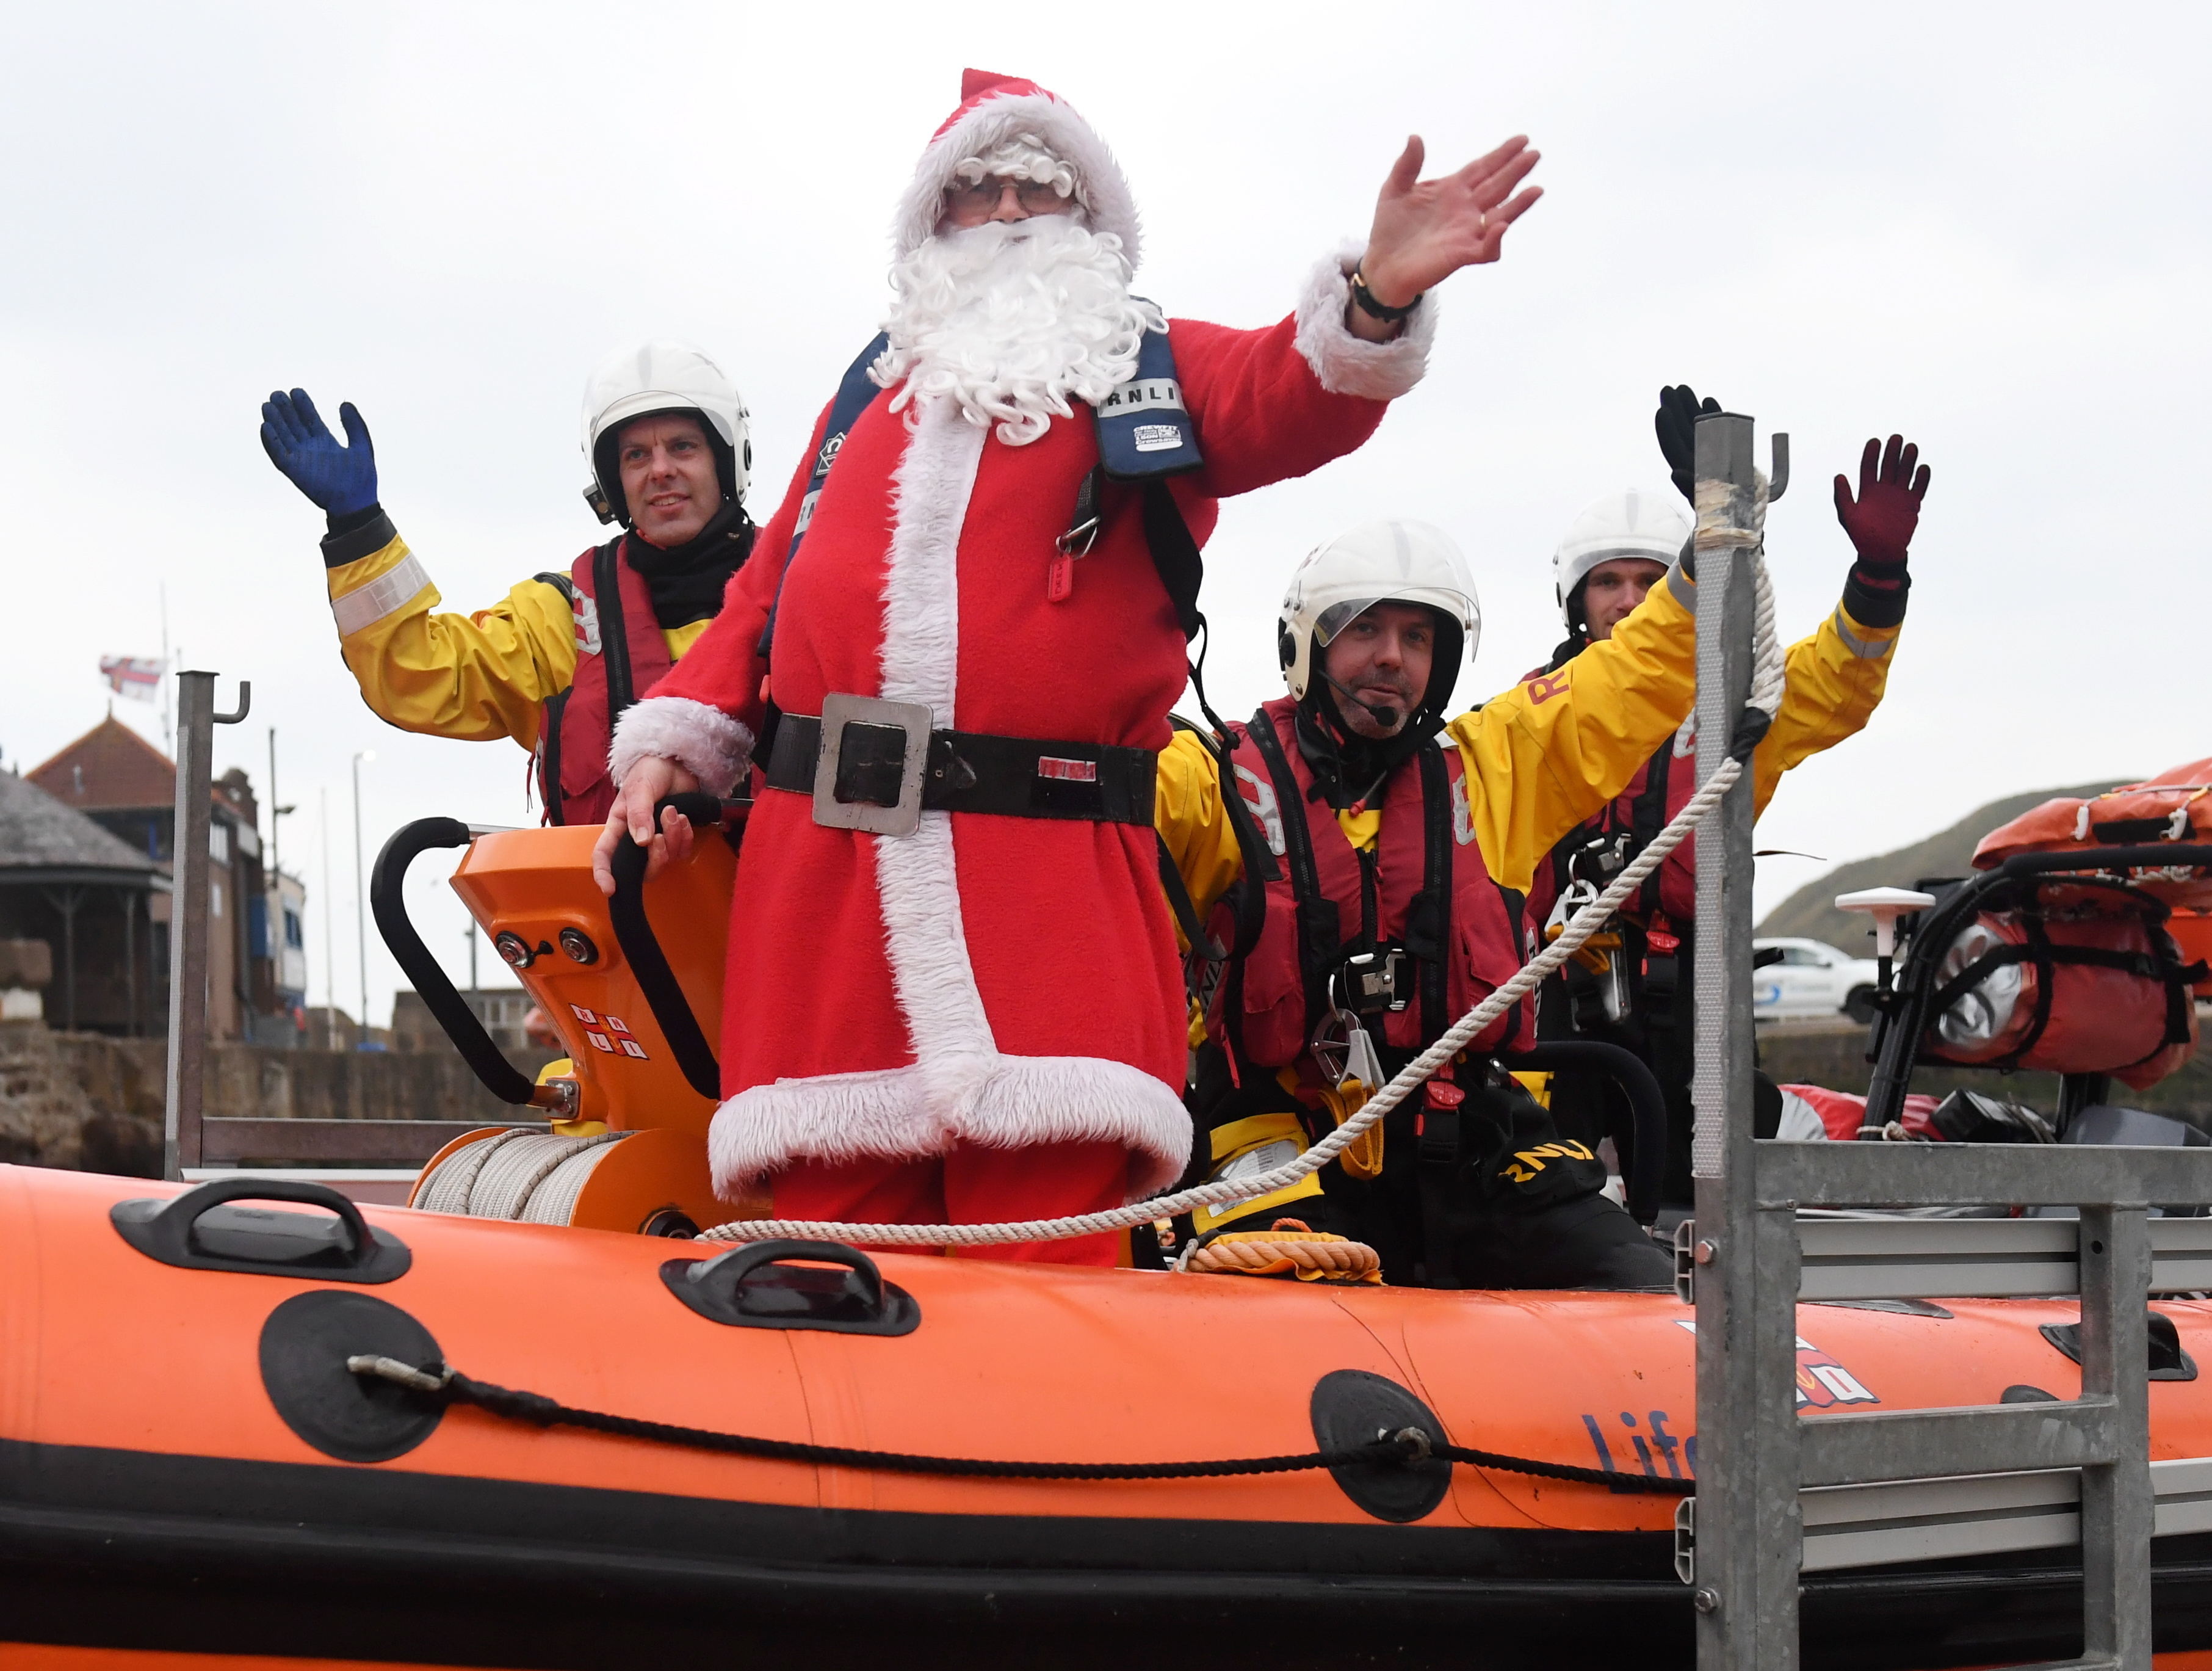 Father Christmas arrived at Stonehaven with help from the RNLI.